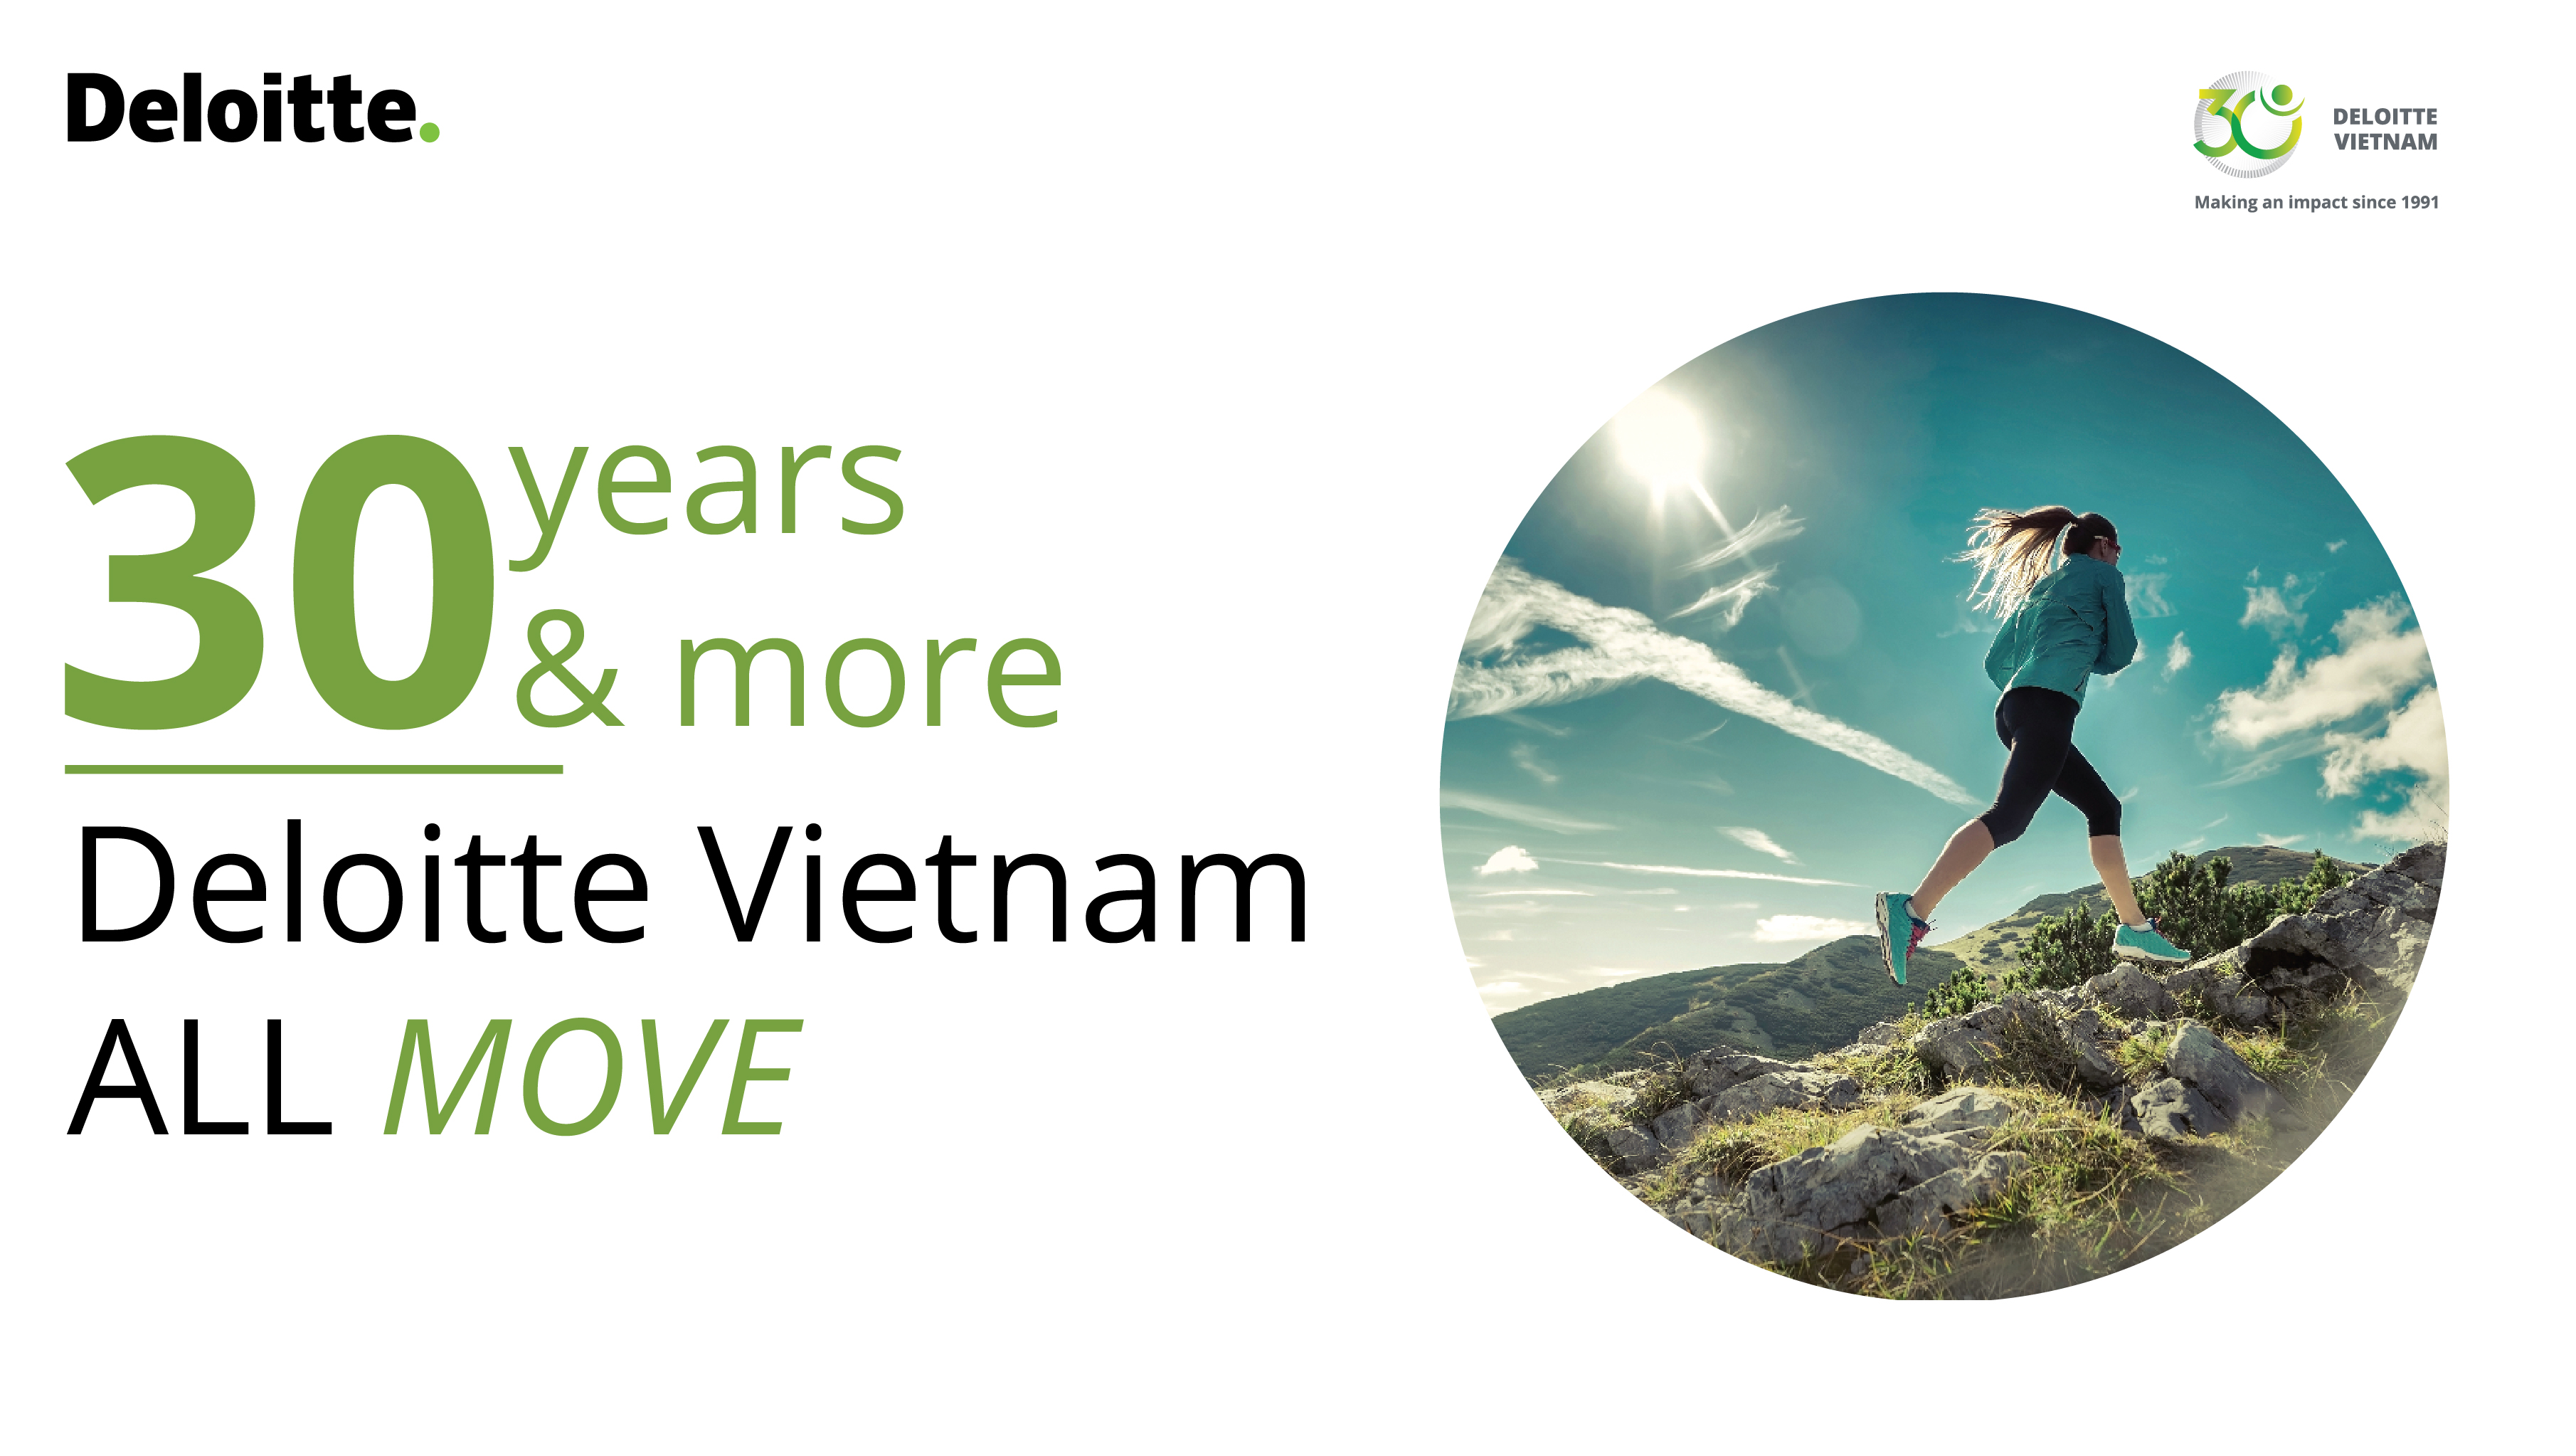 DELOITTE VIỆT NAM 30 years and more